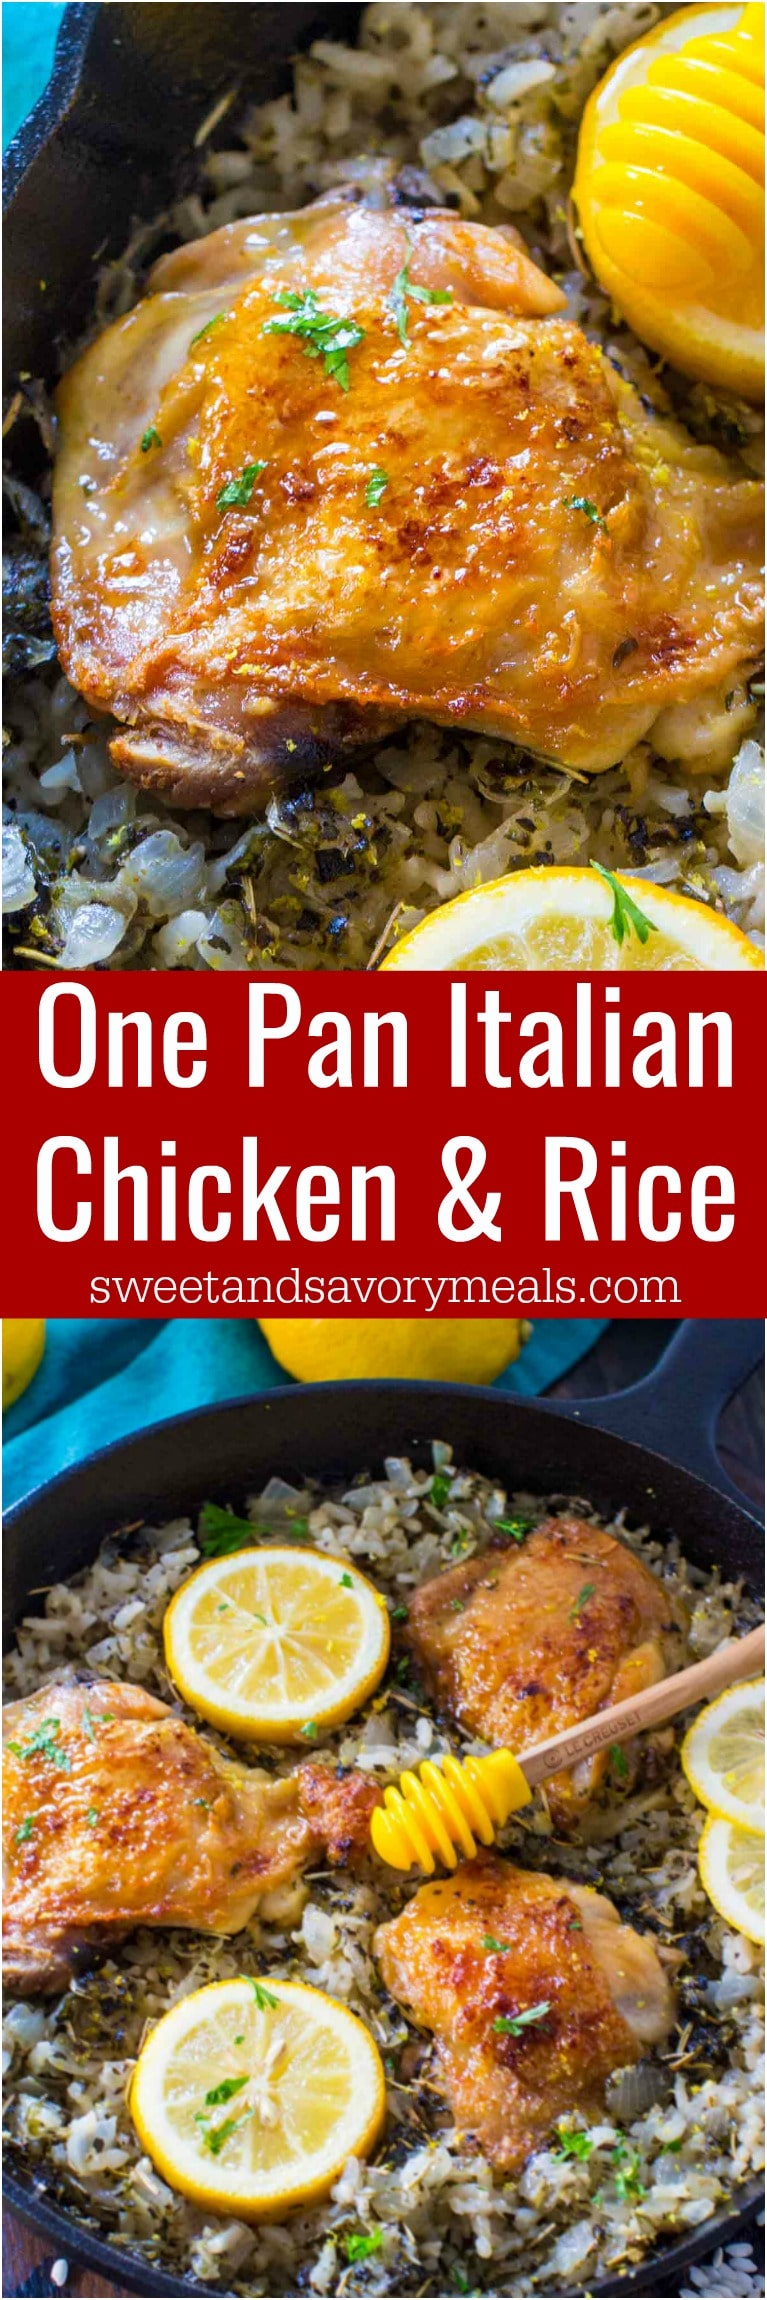 One Pan Italian Chicken and Rice is the perfect weeknight mealthat is packed with flavor, budget friendly and also very easy to make.